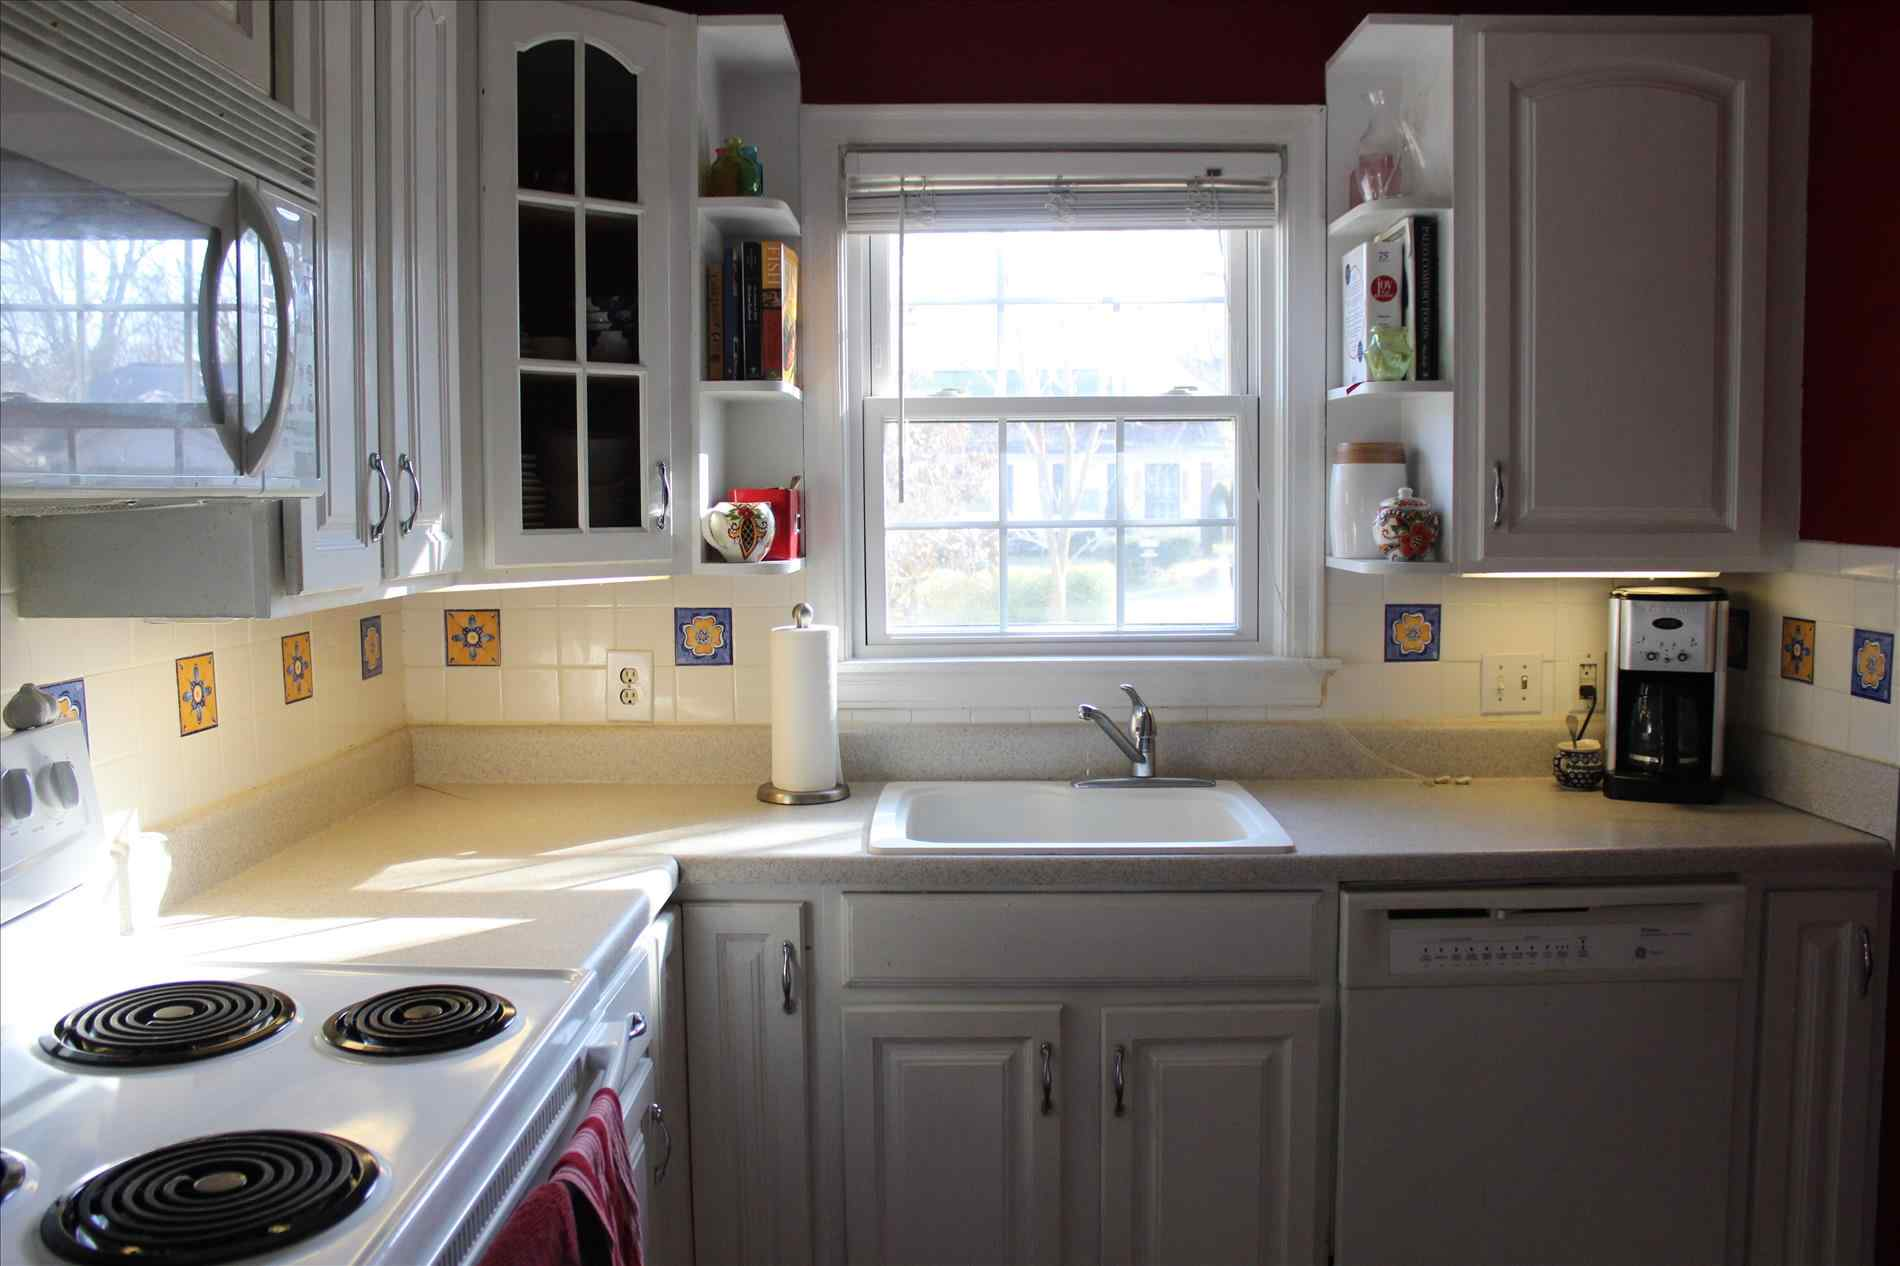 white kitchen cabinets good idea photo - 3